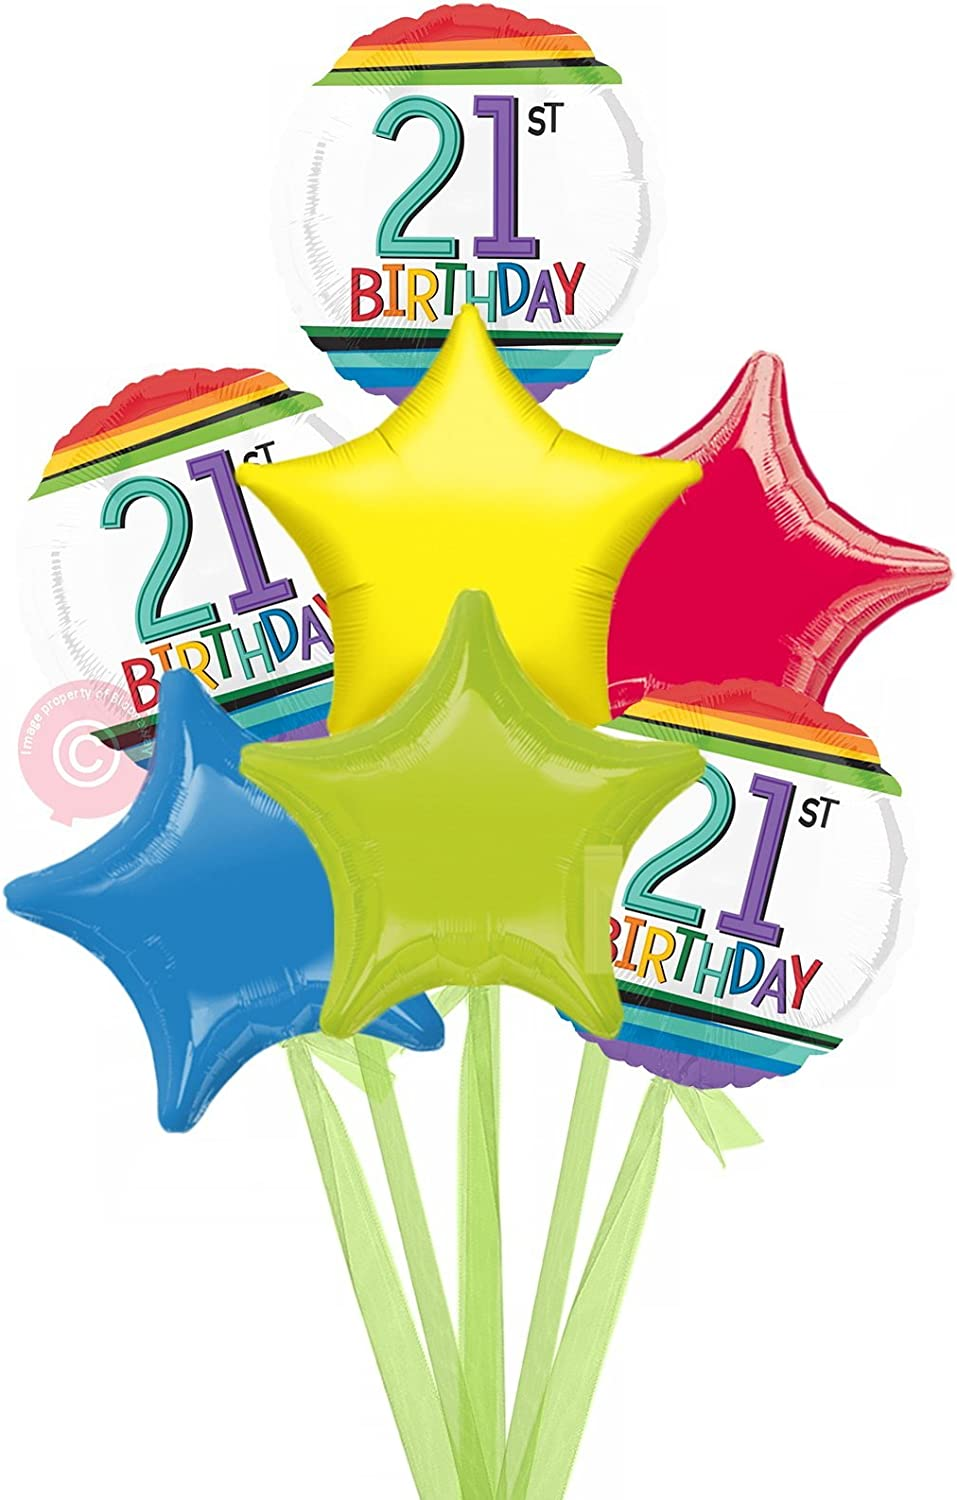 Num 21 Rainbow 21st Birthday  Inflated Birthday Helium Balloon Delivered in a Box  Bigger Bouquet  7 Balloons  Bloonaway